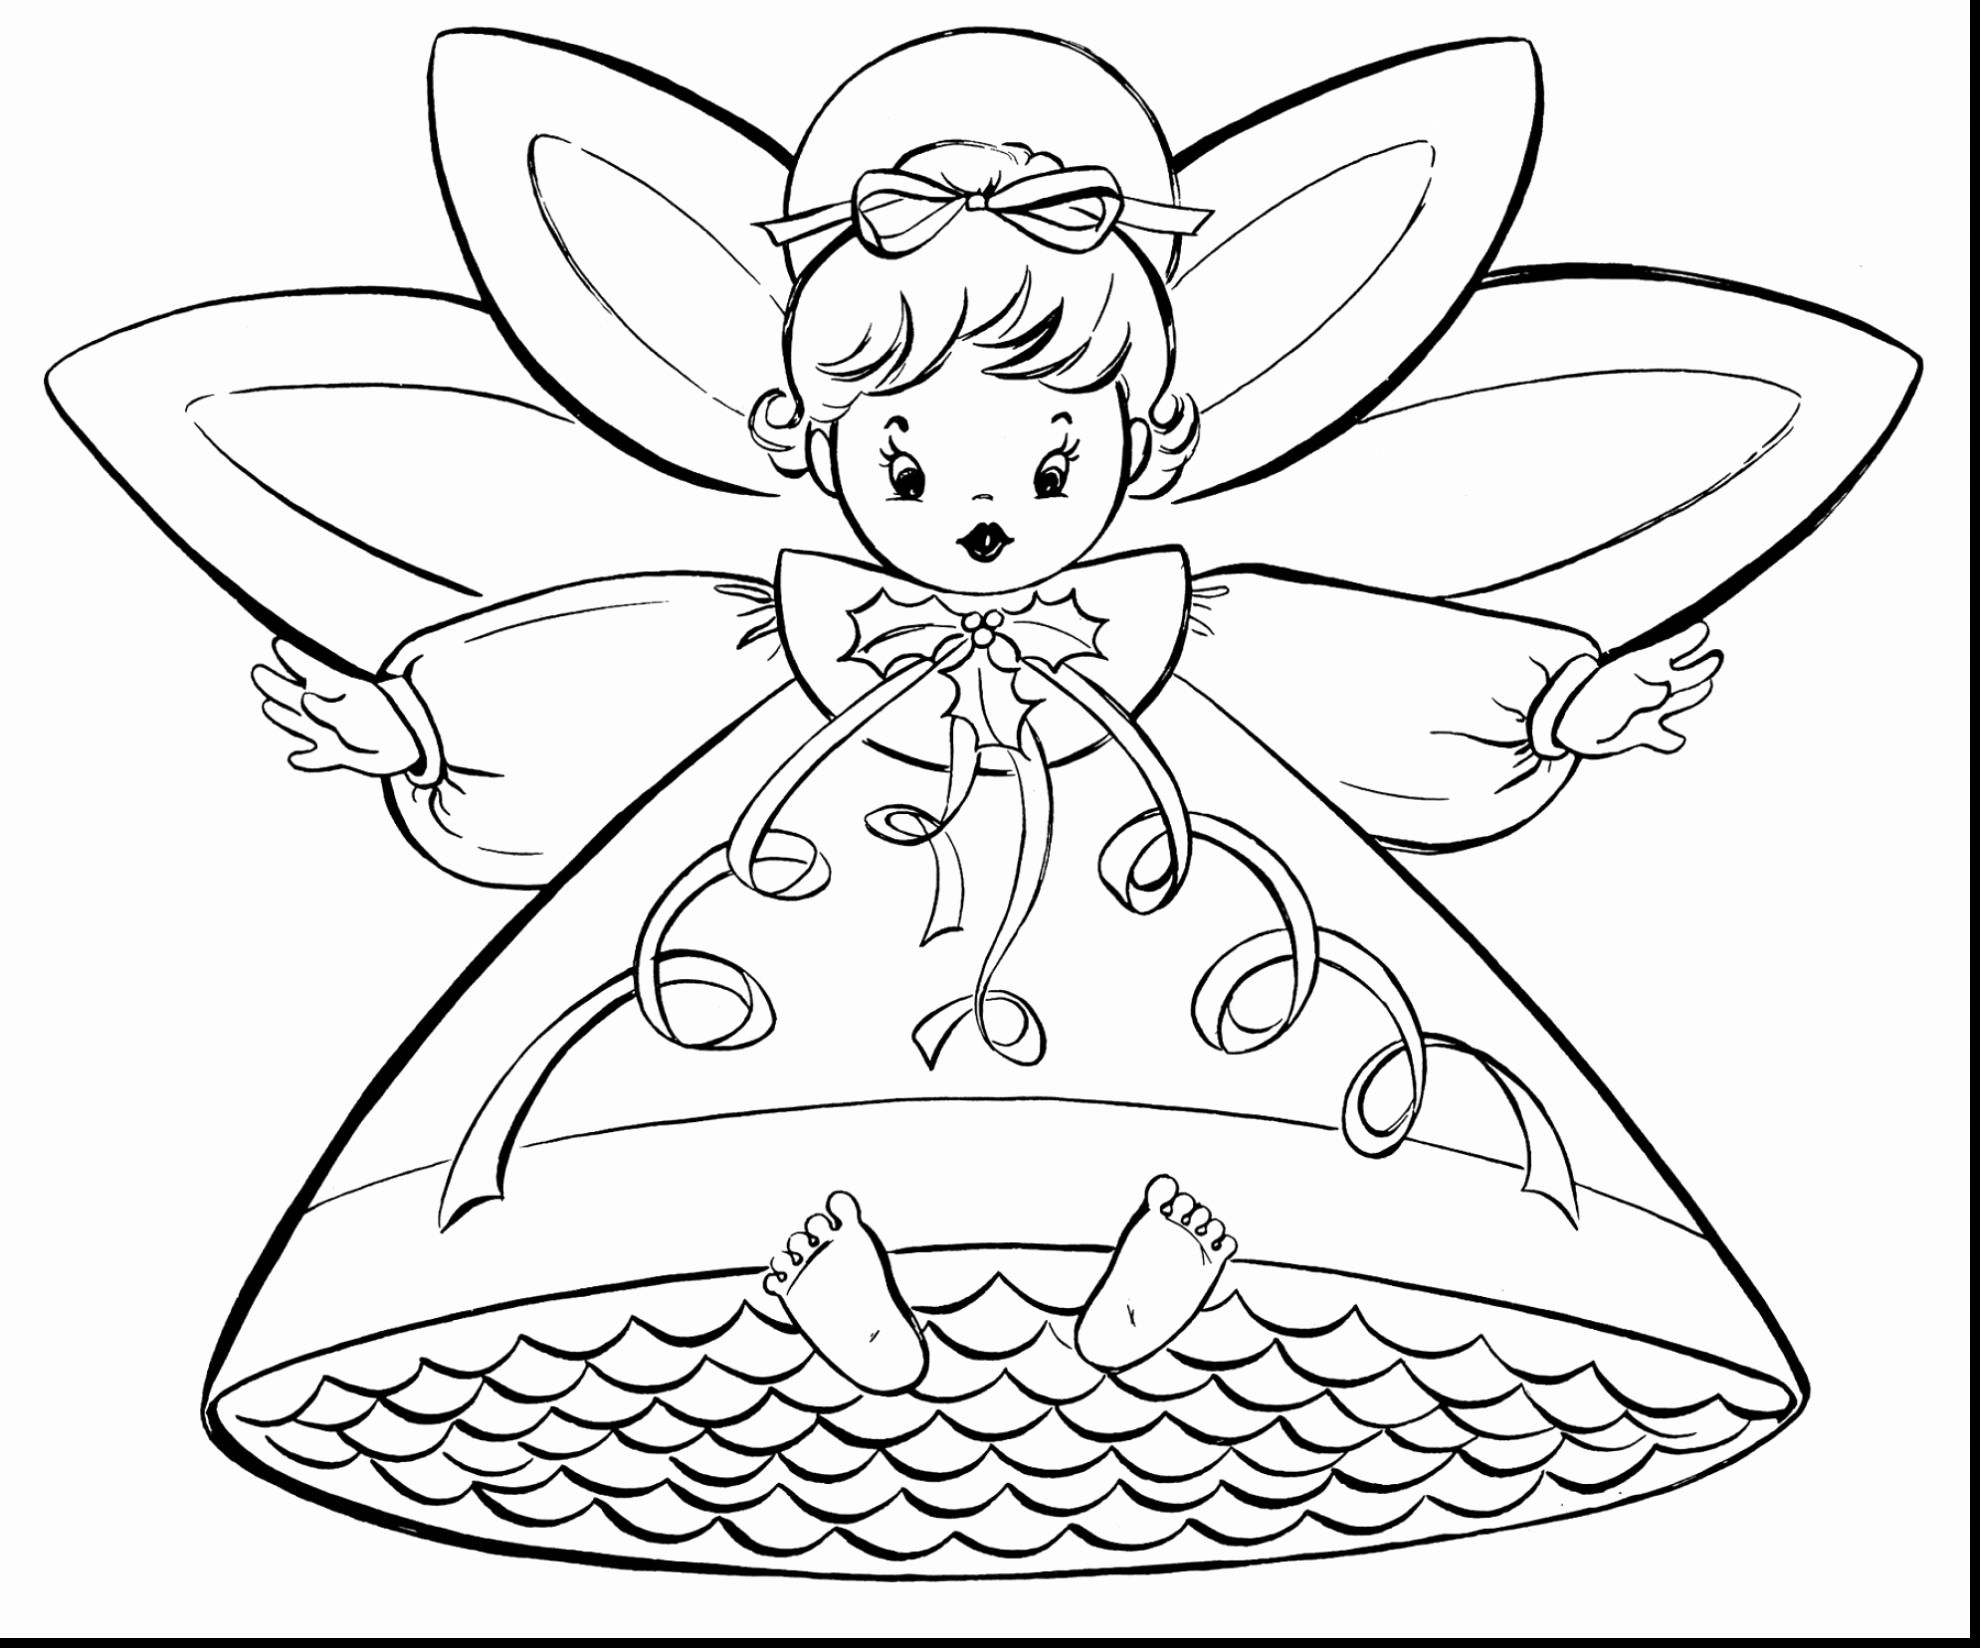 1980x1648 Printable Christmas Coloring Sheets Unique Math Coloring Pages